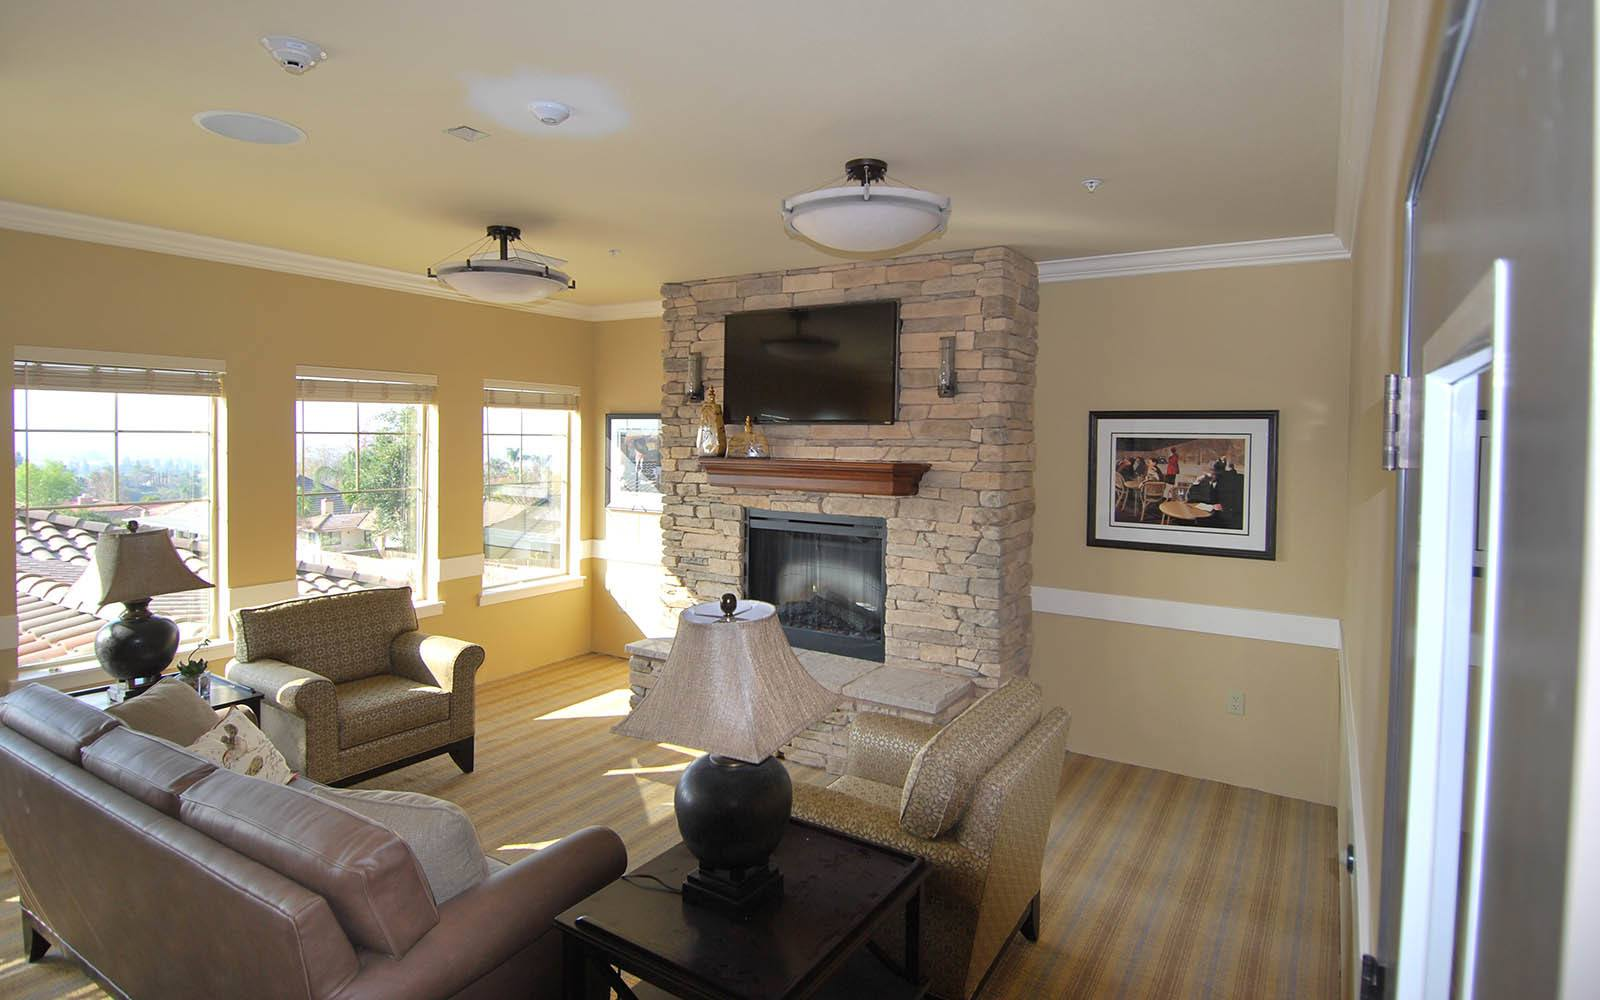 Sitting Room With Tv And Fireplace at Brightwater Senior Living of Highland in Highland, CA